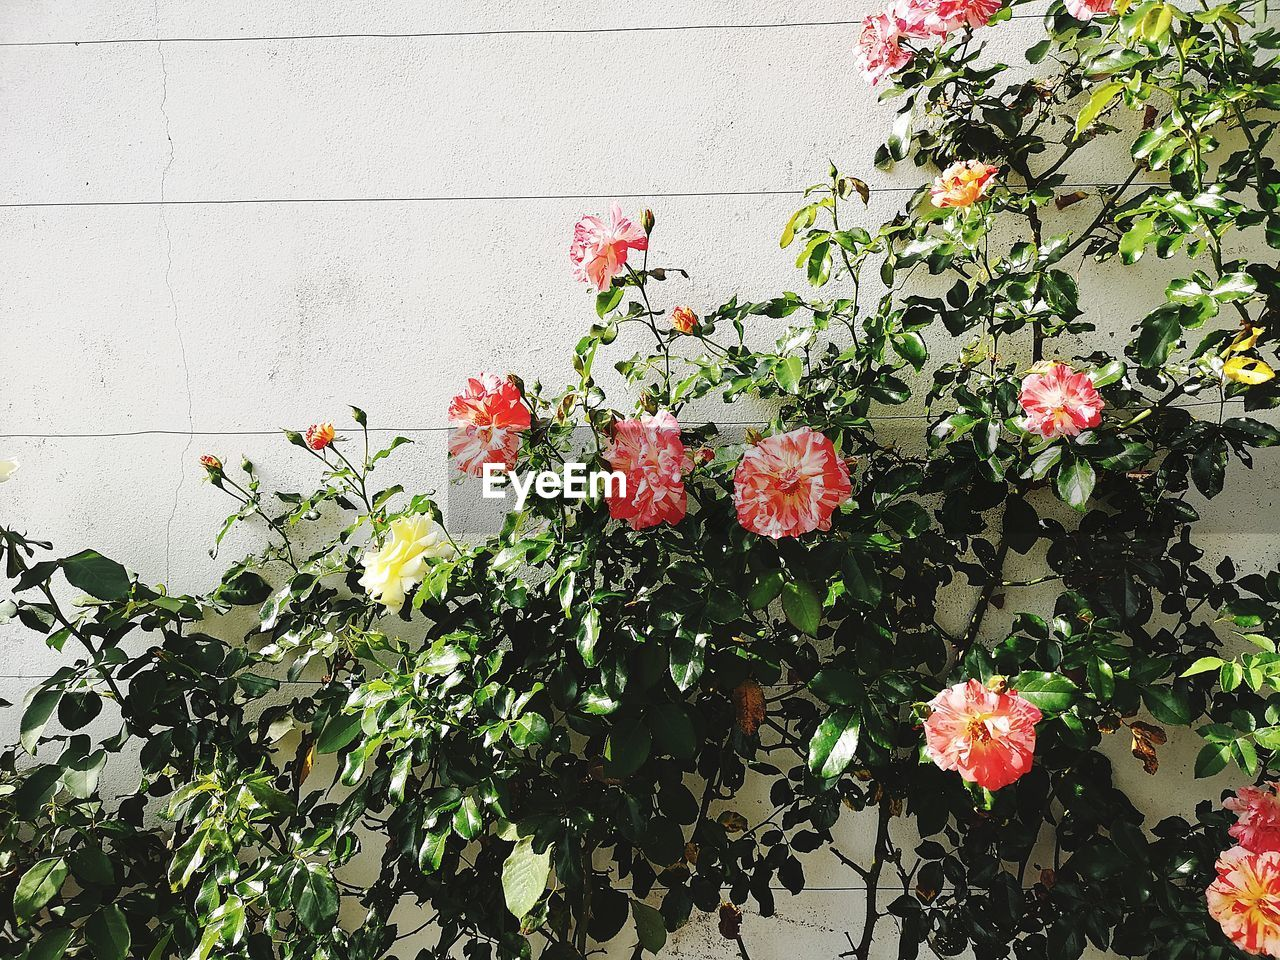 plant, flowering plant, flower, growth, freshness, beauty in nature, fragility, vulnerability, plant part, leaf, nature, petal, day, outdoors, no people, close-up, flower head, inflorescence, red, wall - building feature, spring